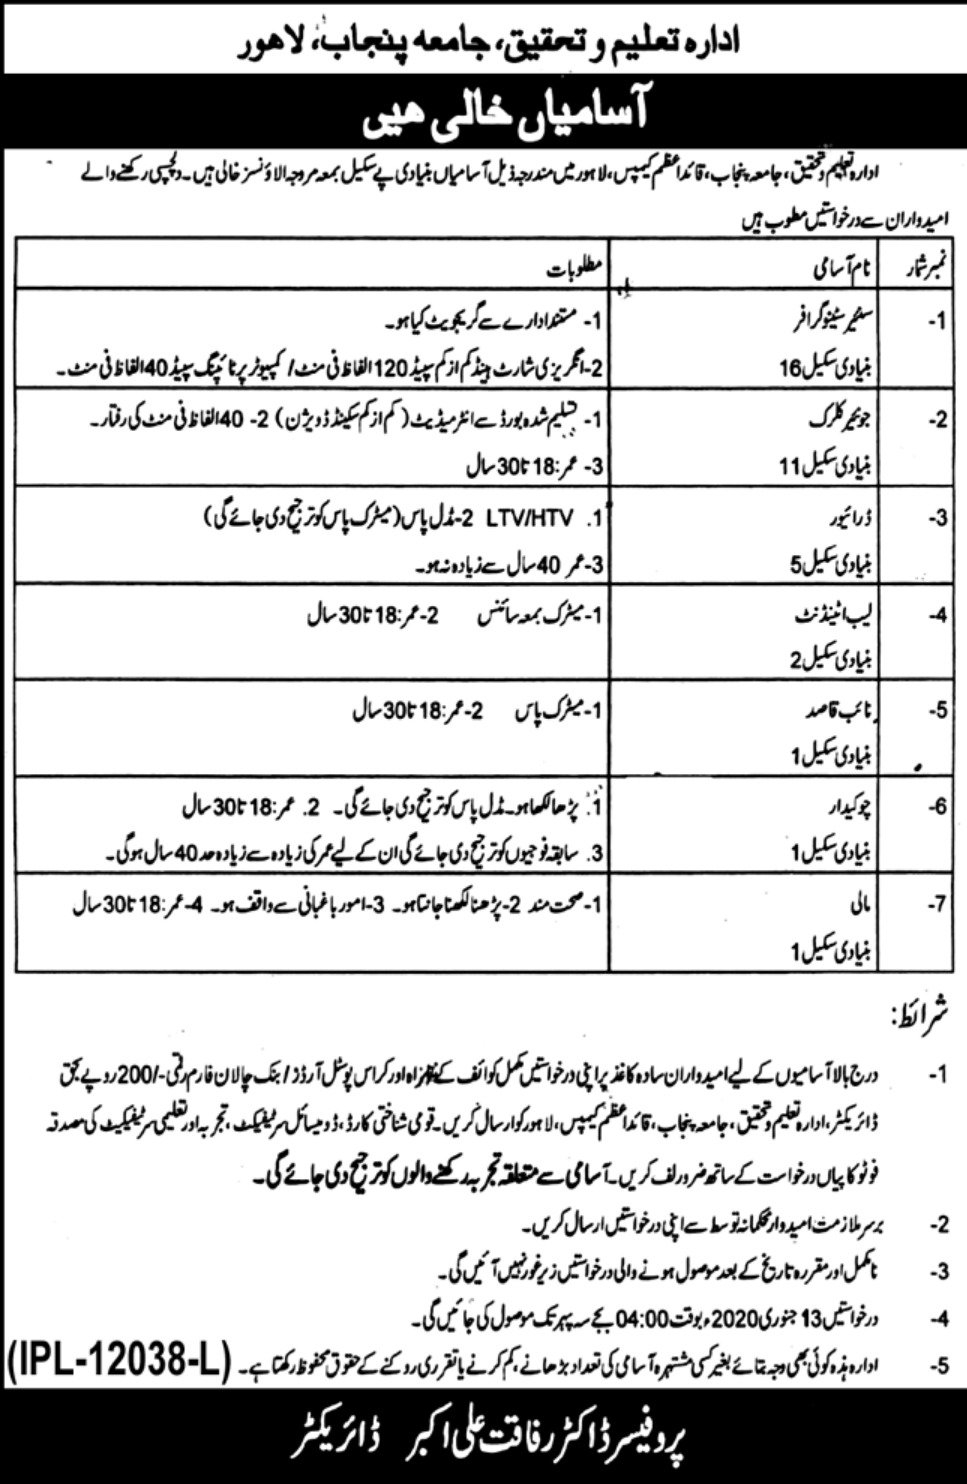 University of Punjab Lahore Jobs 2019 IER Department